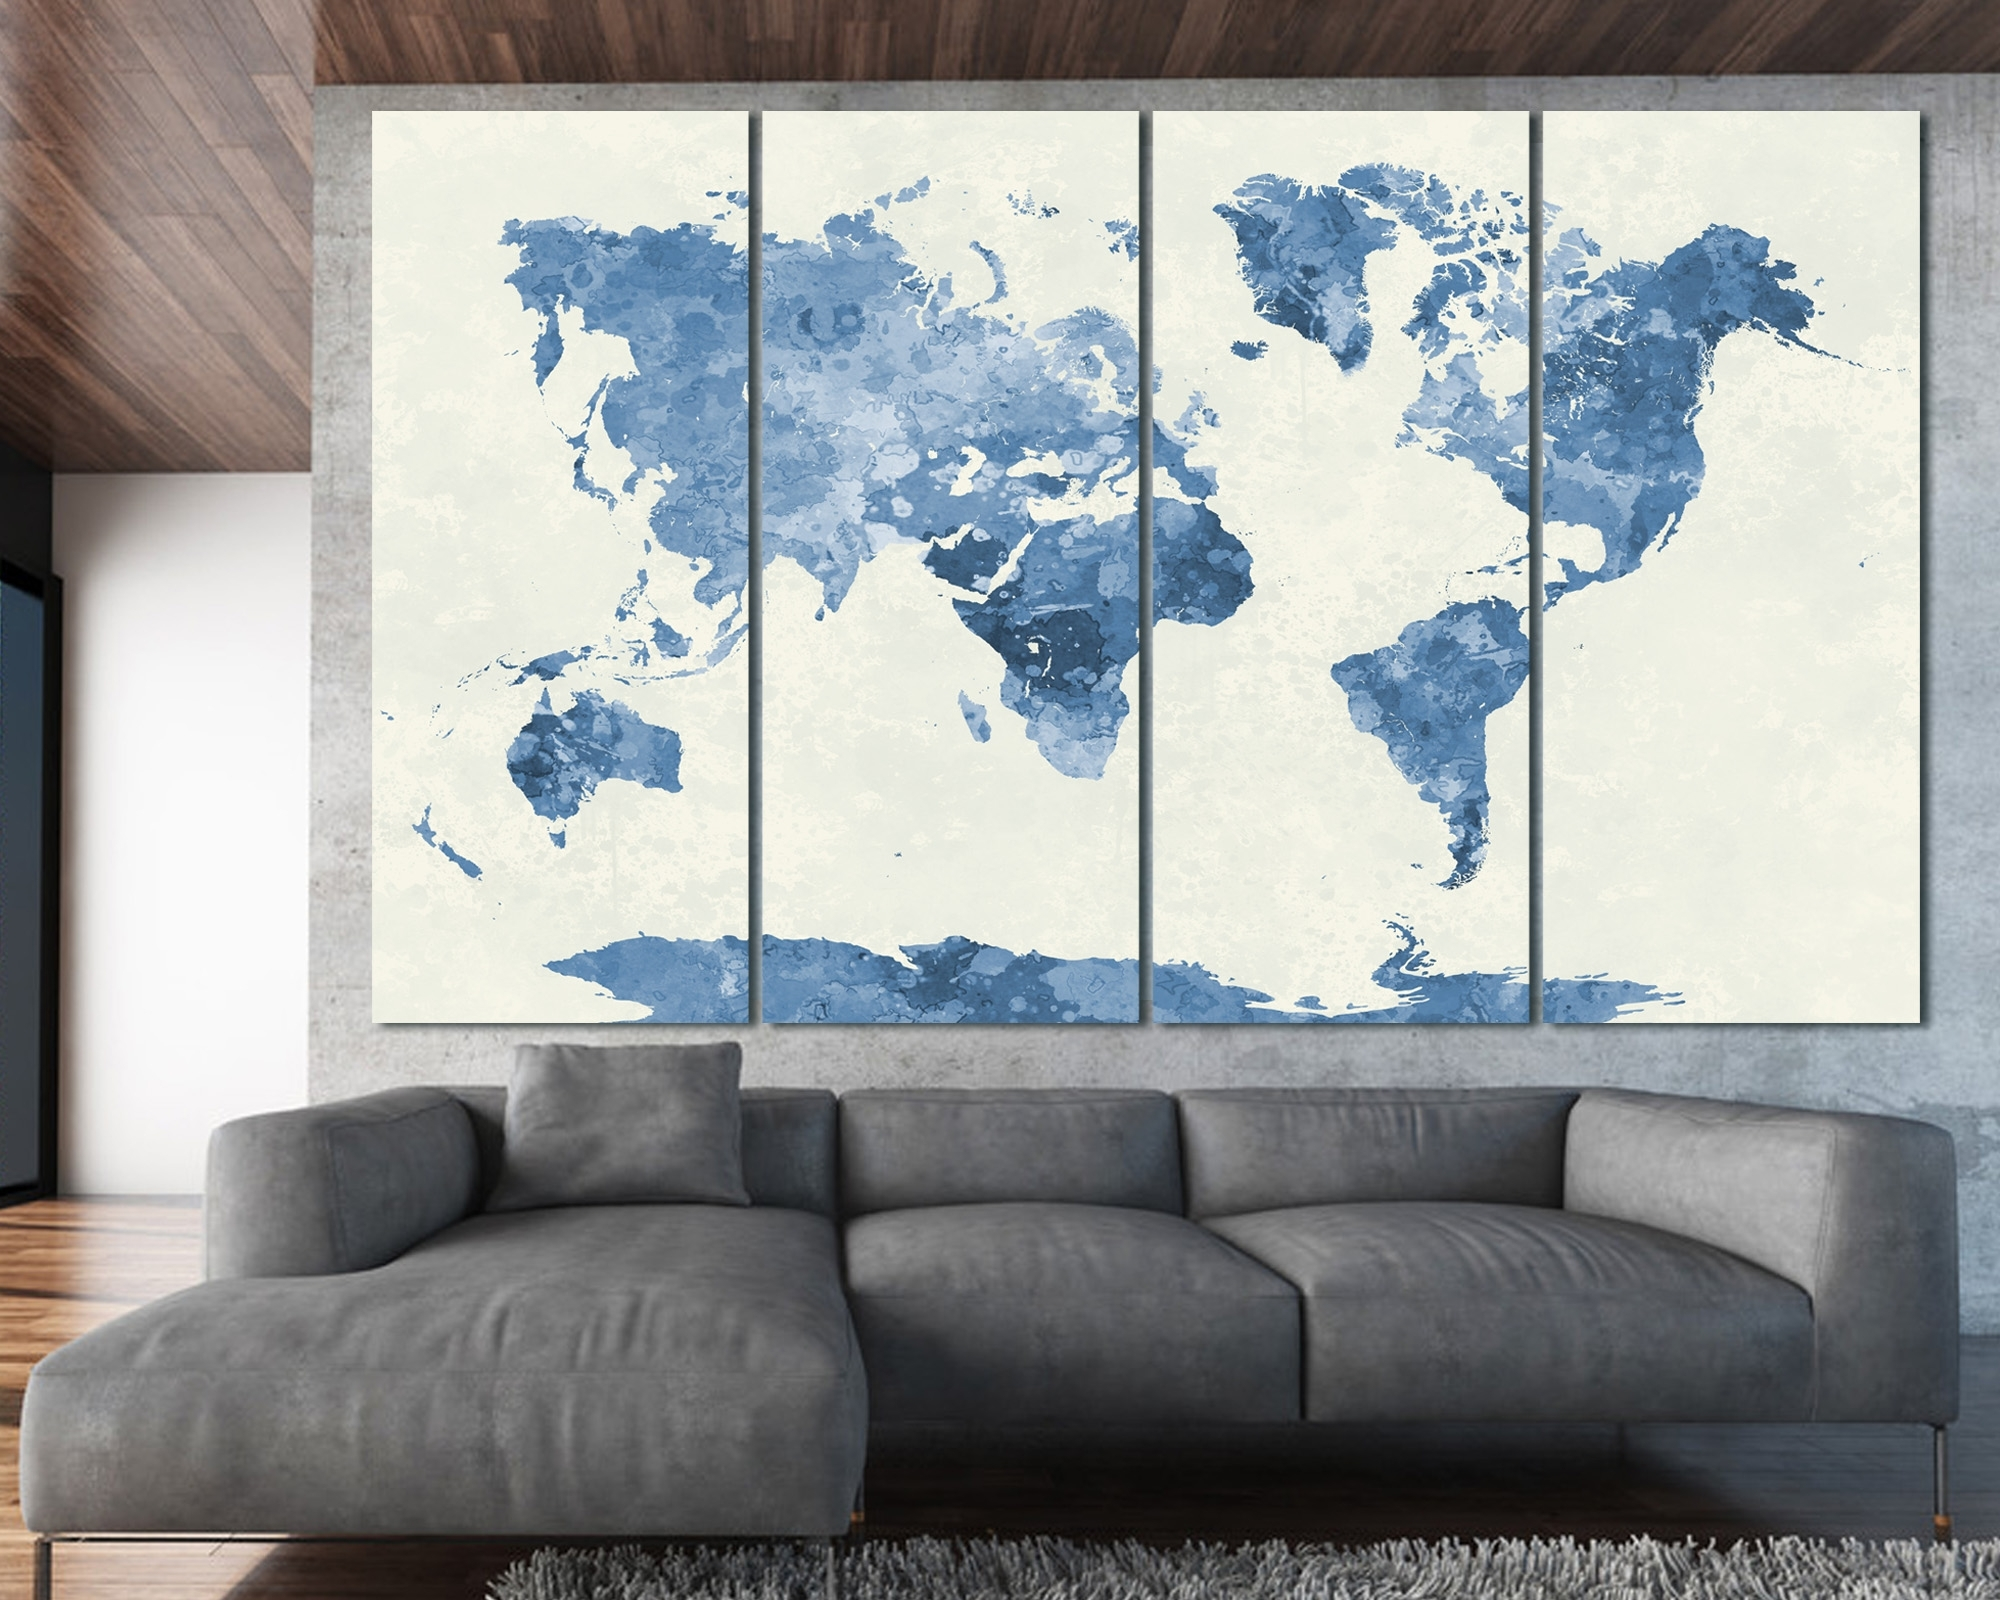 Most Recent Navy Blue Watercolor World Map Print At Texelprintart With Regard To Navy Blue Wall Art (View 6 of 15)